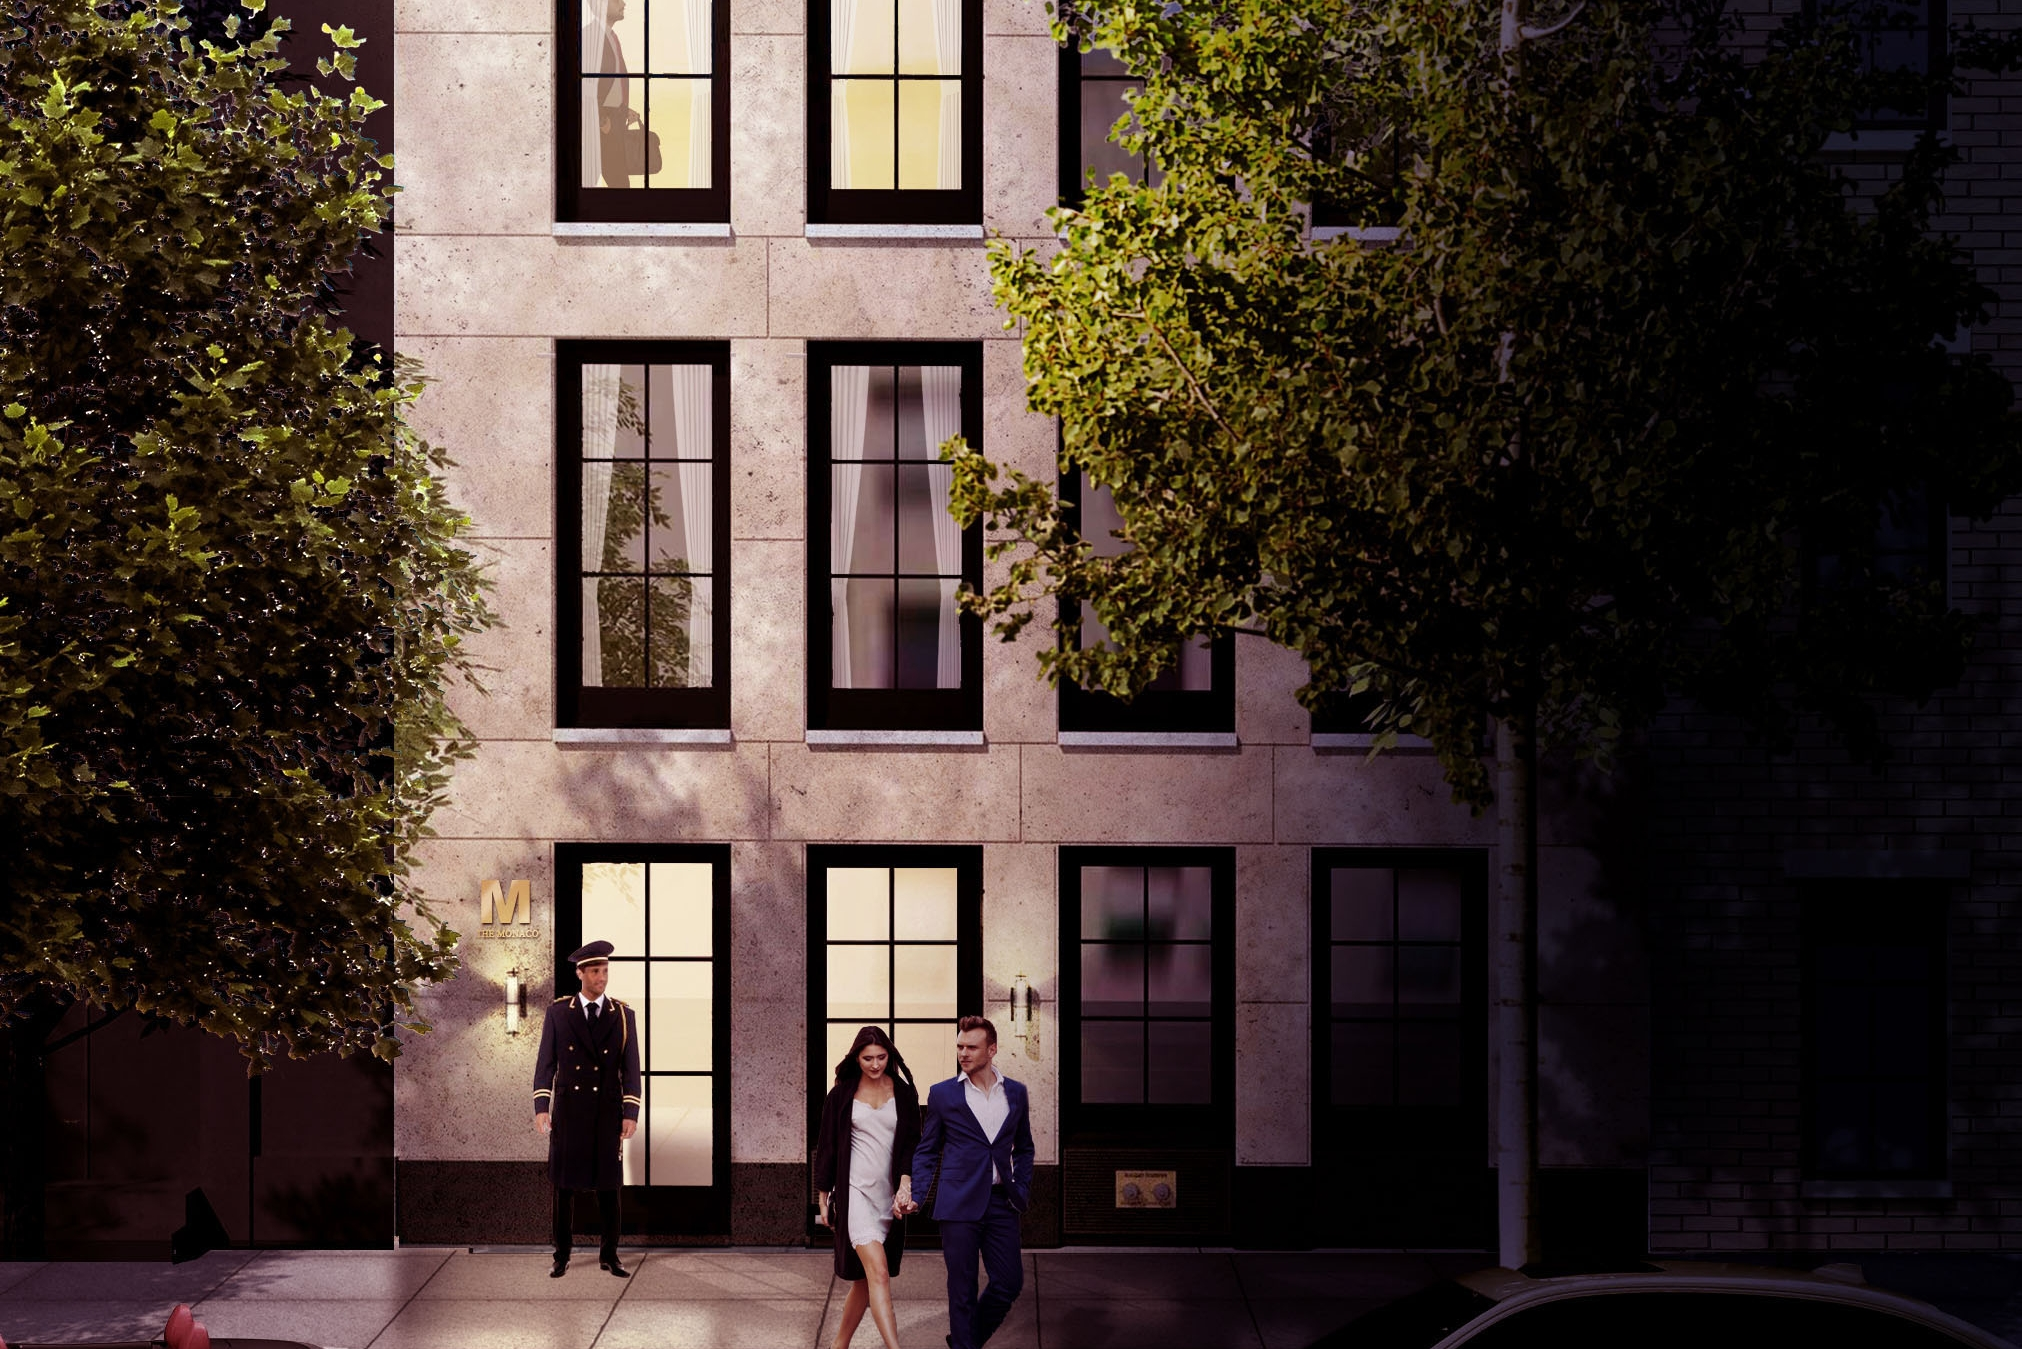 336 East 54th Street: 4B - 1 Bed | 1 Bath | 952 Sq ft. | $1,750,000Introducing The Monaco, the newest Midtown East luxury condominium development. Be the first to live in residence 4B, a beautifully crafted and impeccably designed 1 bedroom + Home Office, 1.5 bathroom home with private outdoor space.